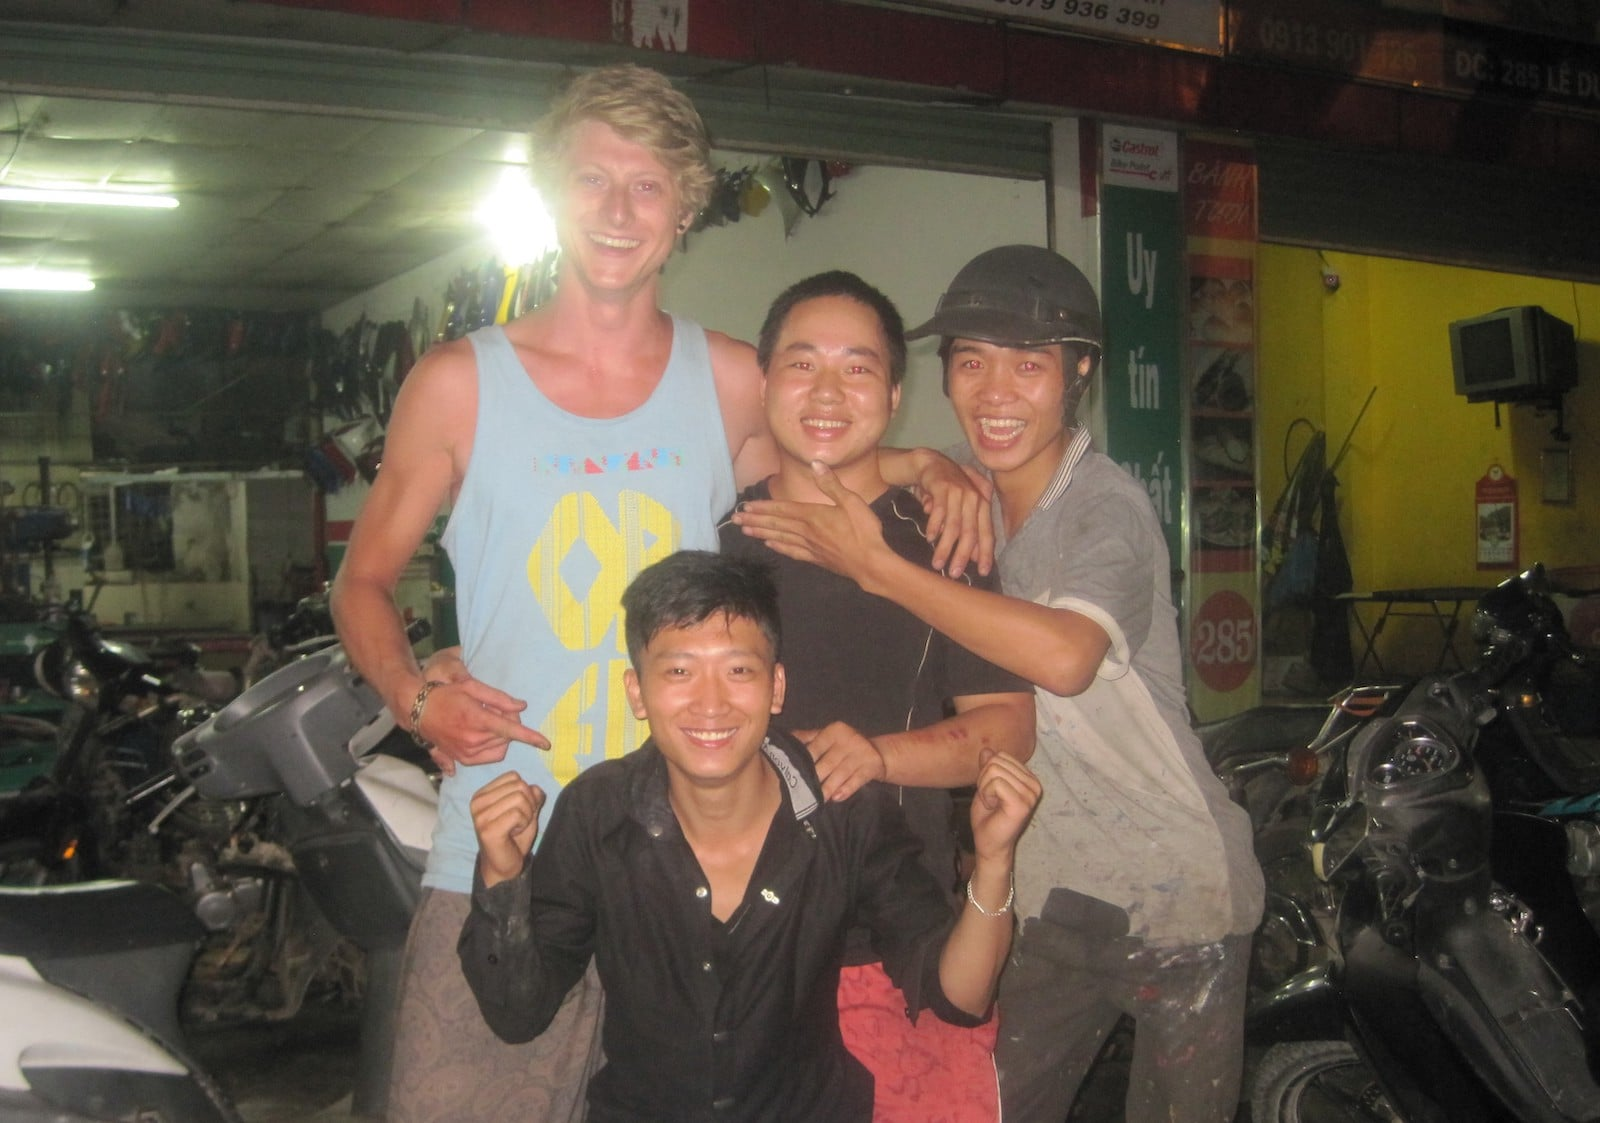 Image of Daniel with locals in Vietnam during his motorbike trip